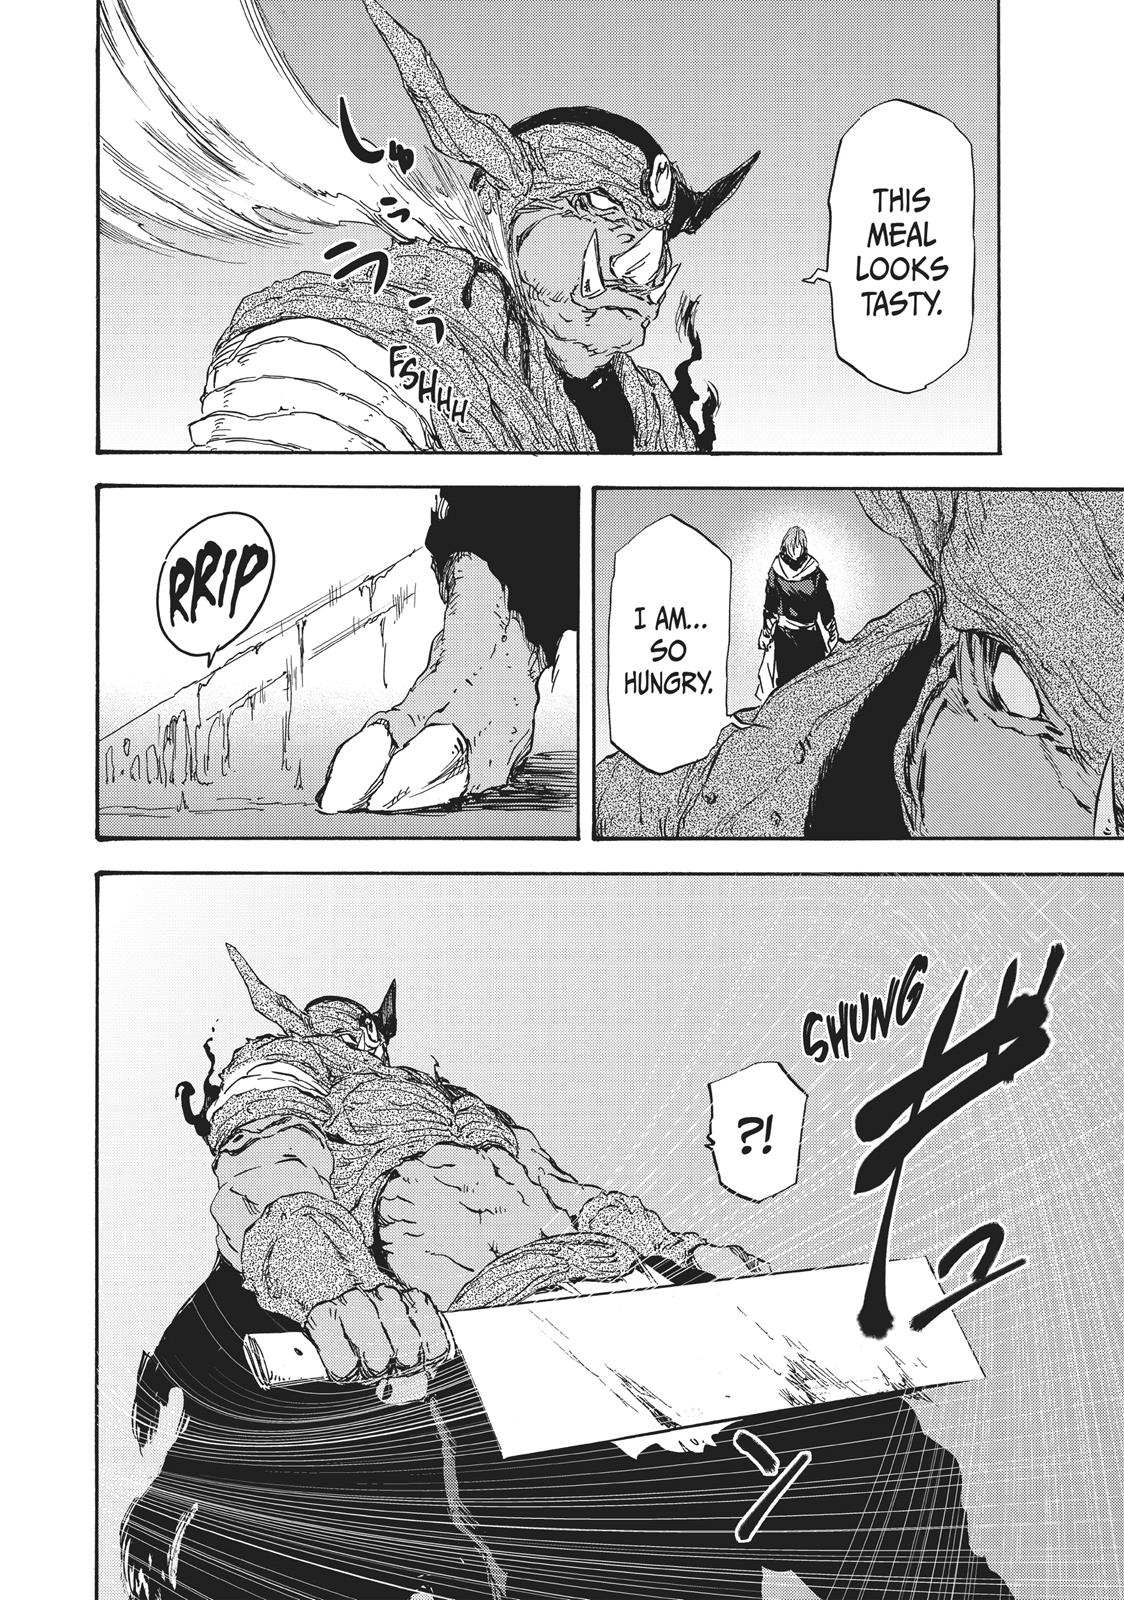 That Time I Got Reincarnated As A Slime, Chapter 24 image 009